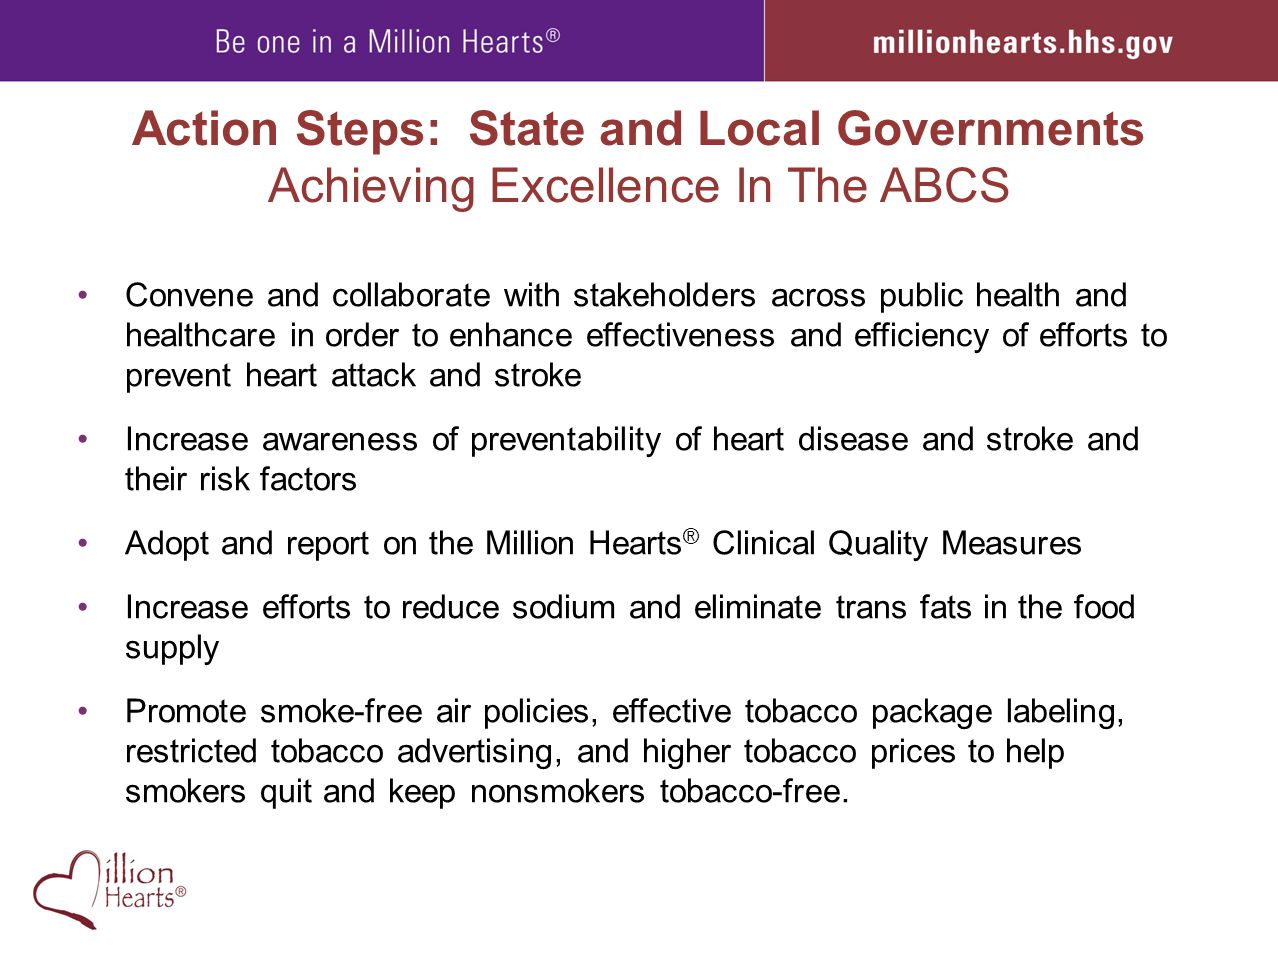 Action Steps: State and Local Governments Achieving Excellence In The ABCS